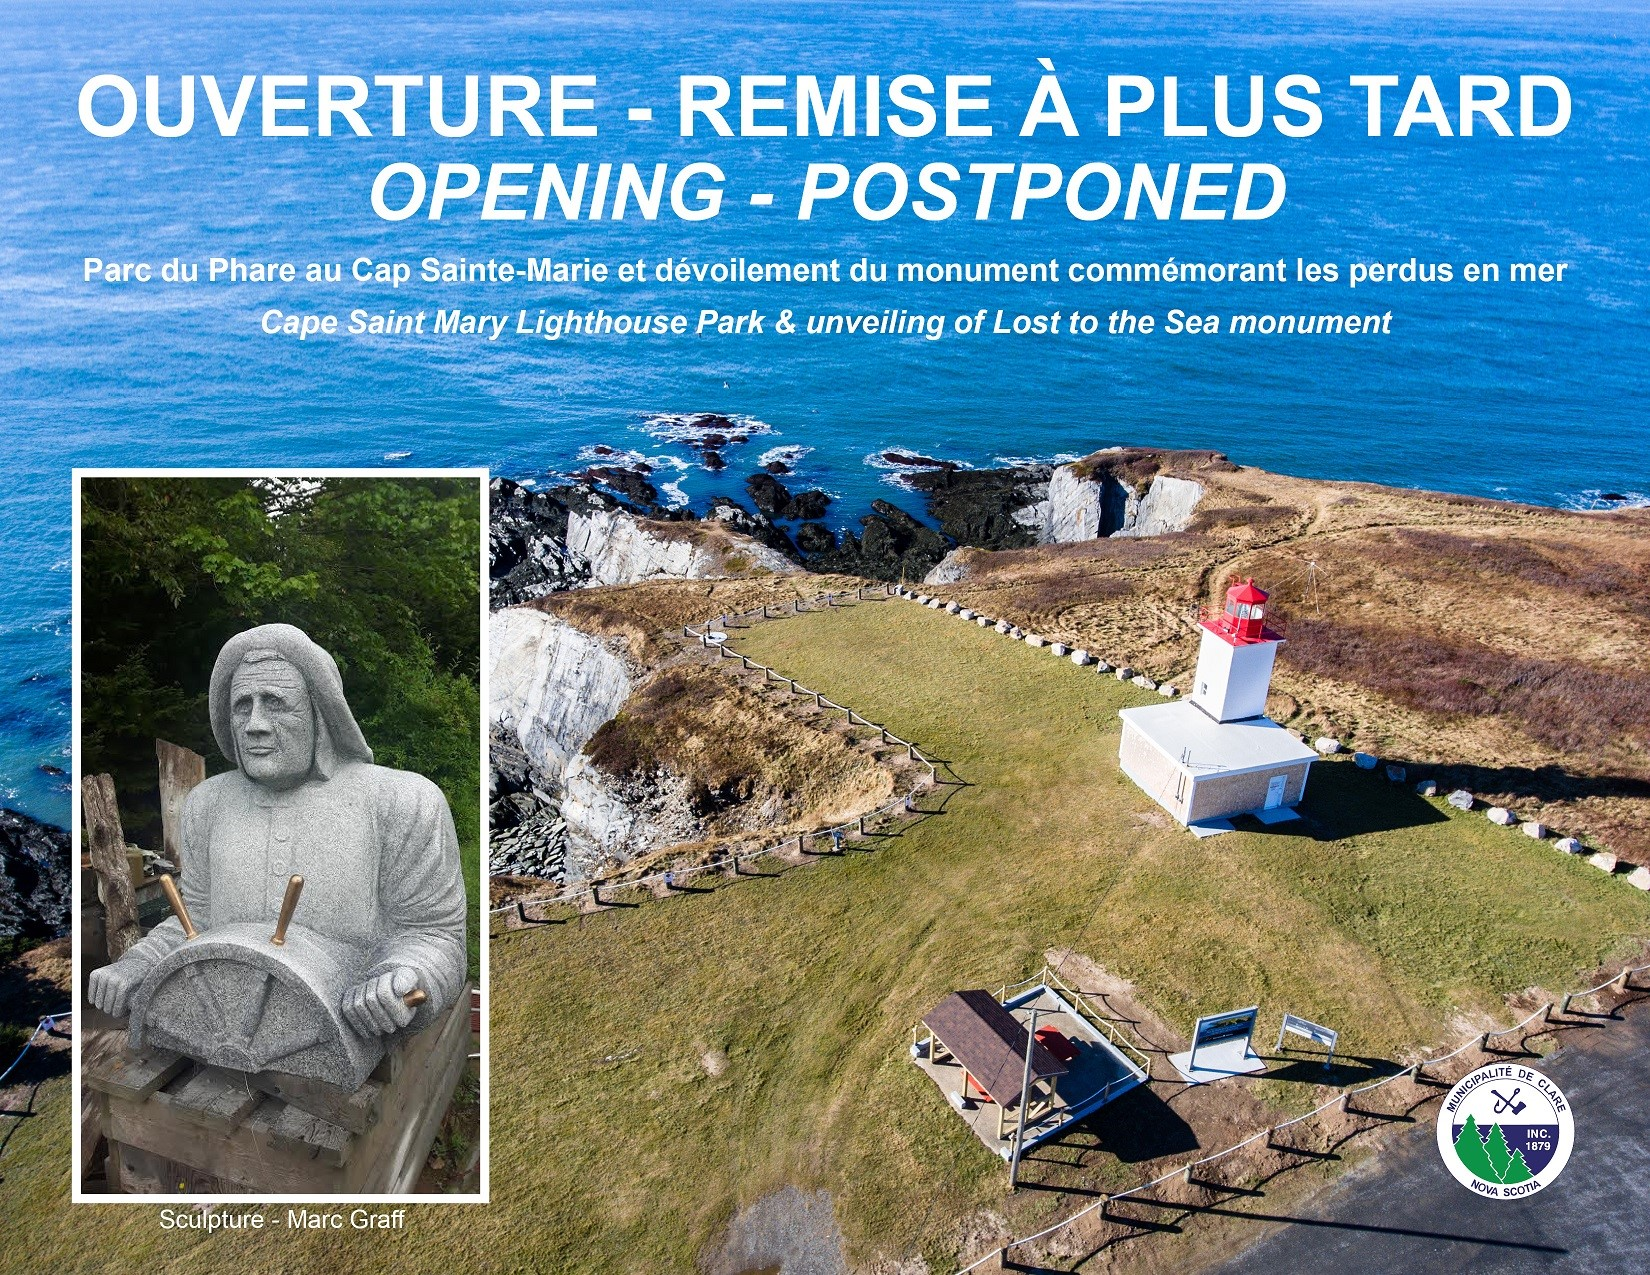 Cape opening May 17 Postponed